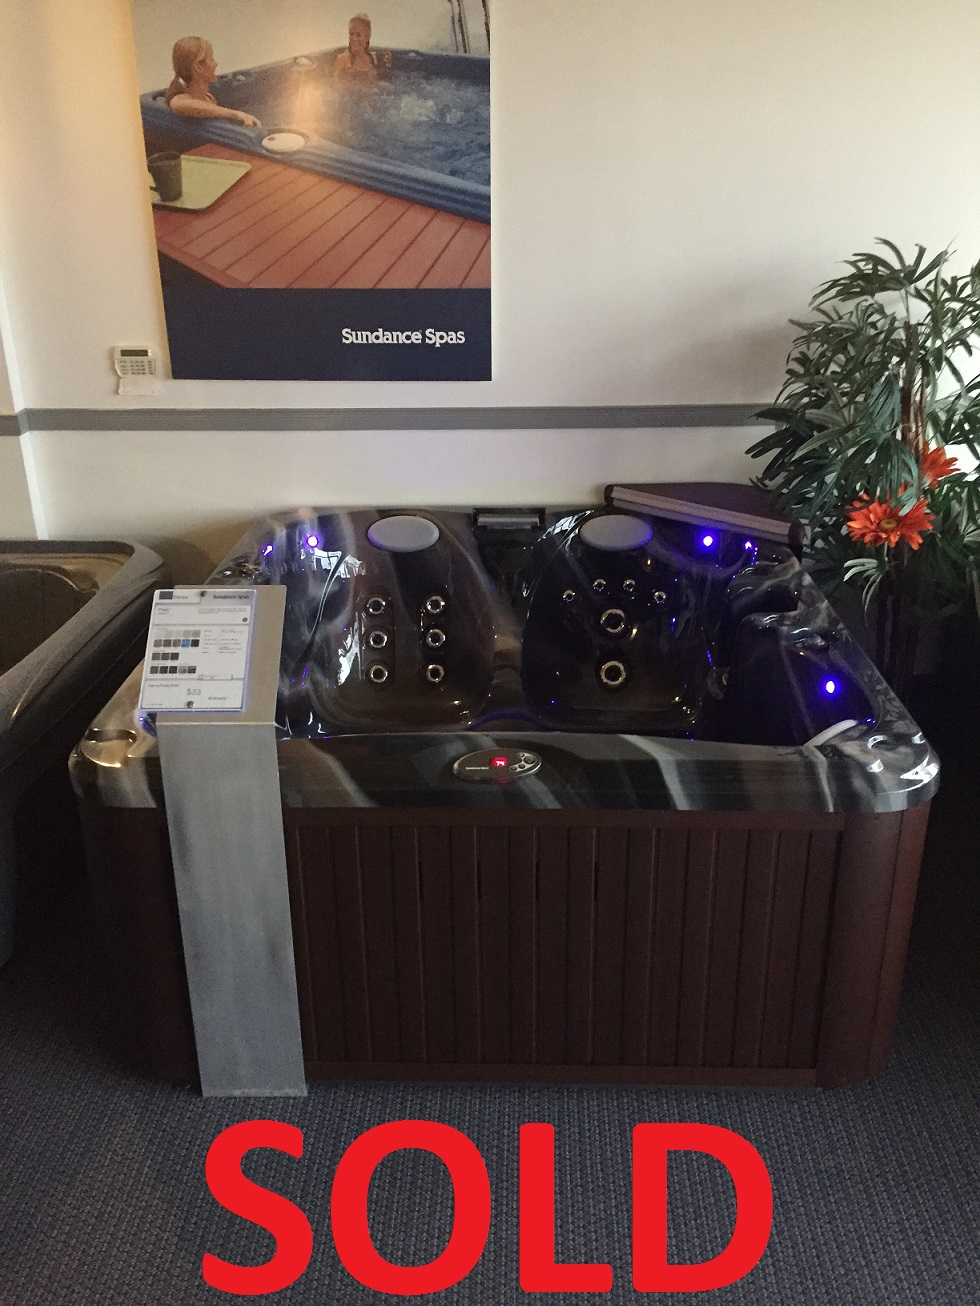 Sundance Spas St Catharines Niagara hot tubs hot tub Ontario floor special discount jacuzzi whirlpool specials